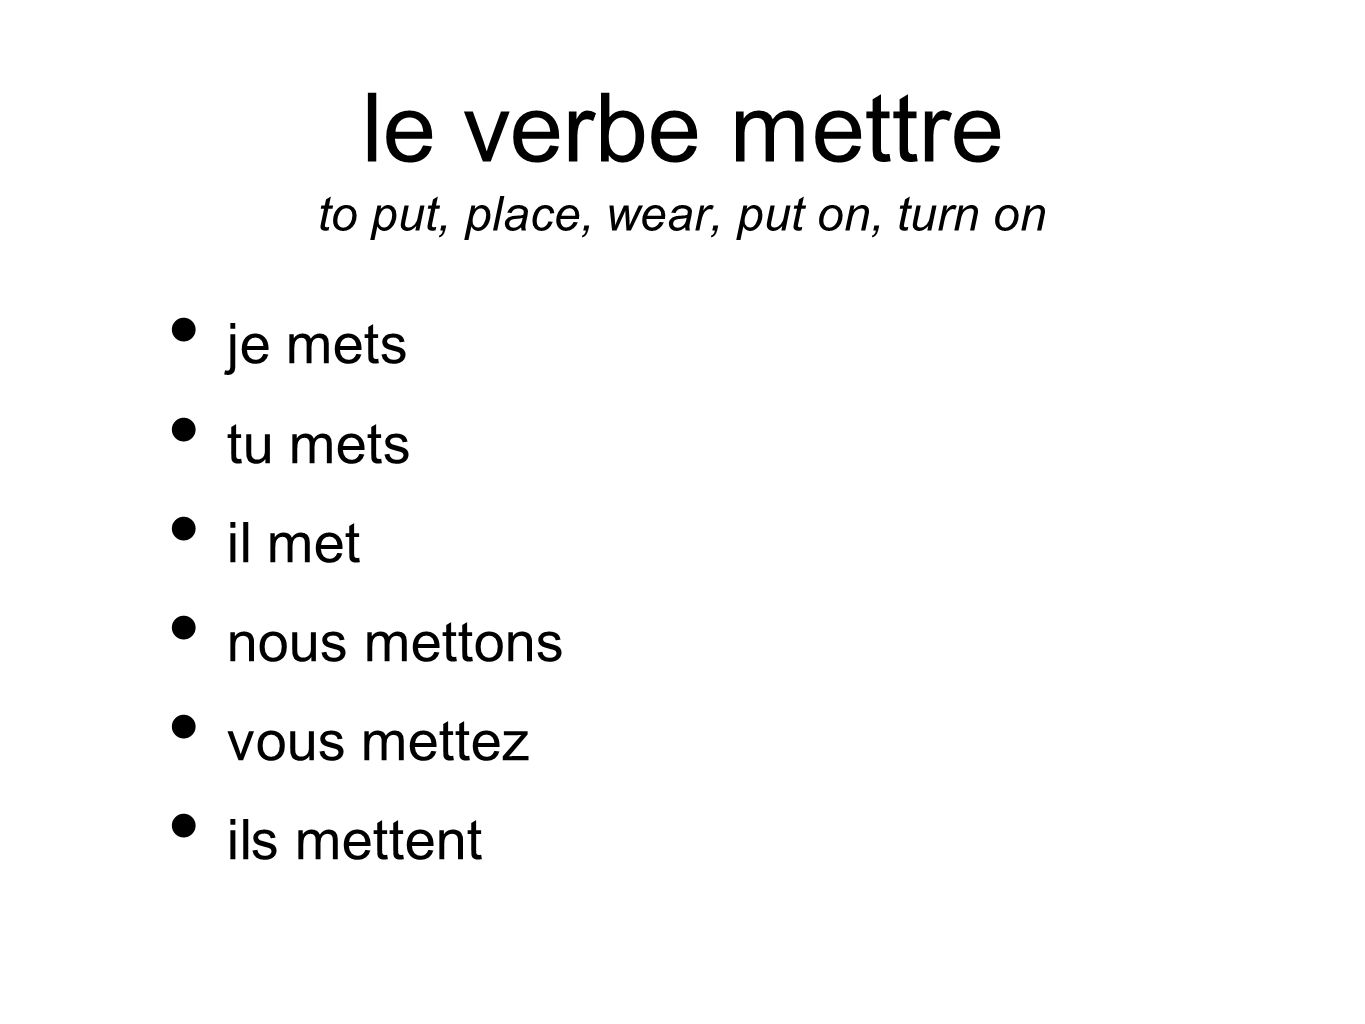 le verbe mettre to put, place, wear, put on, turn on